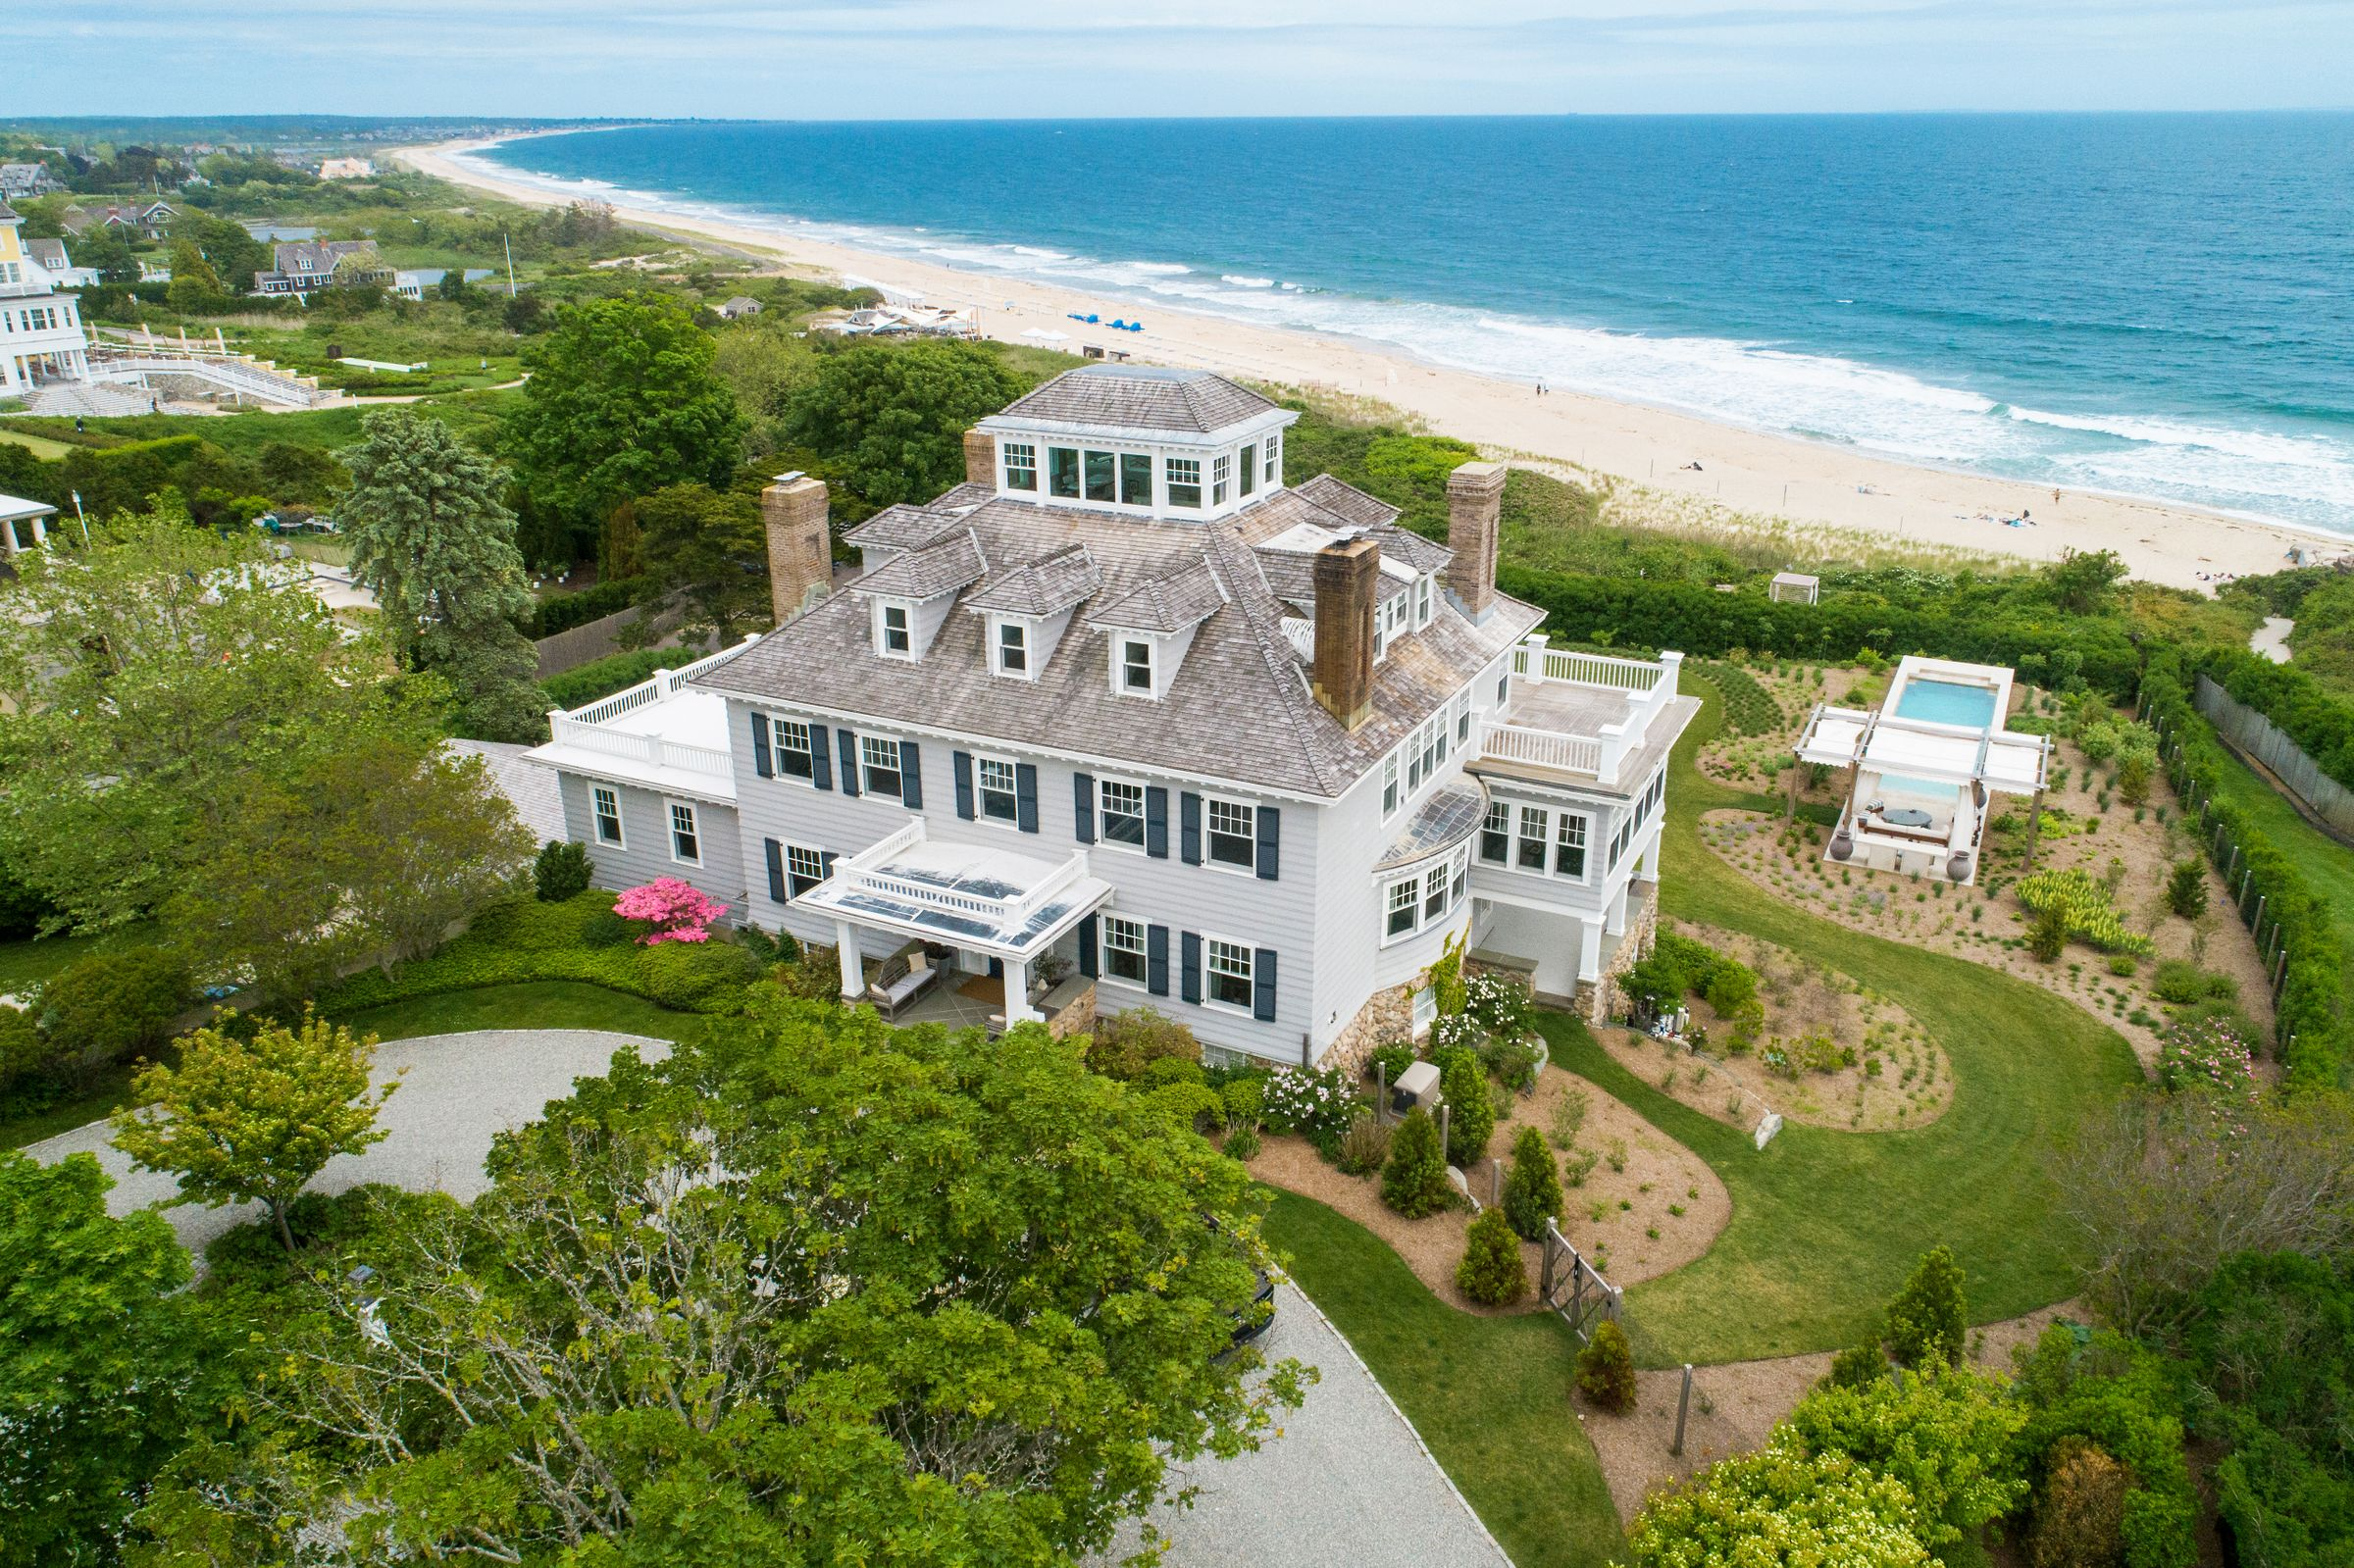 Rhode Island Mansion Near Taylor Swift's House Sells For $17.6 Million